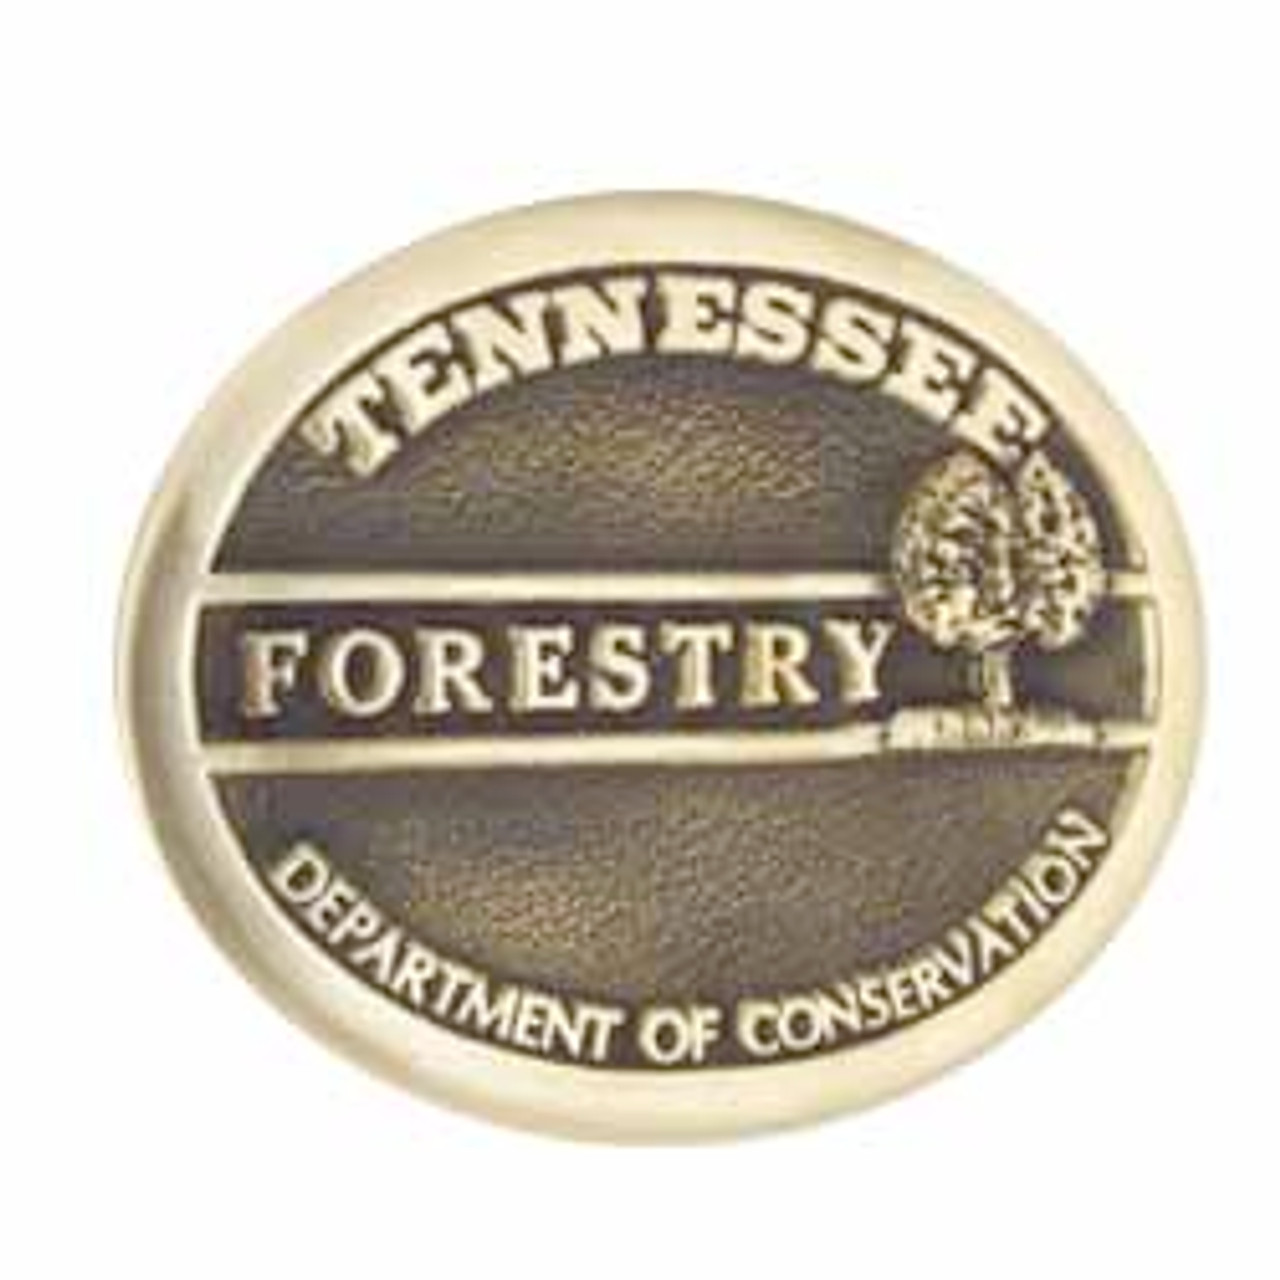 Tennessee Forestry Buckle